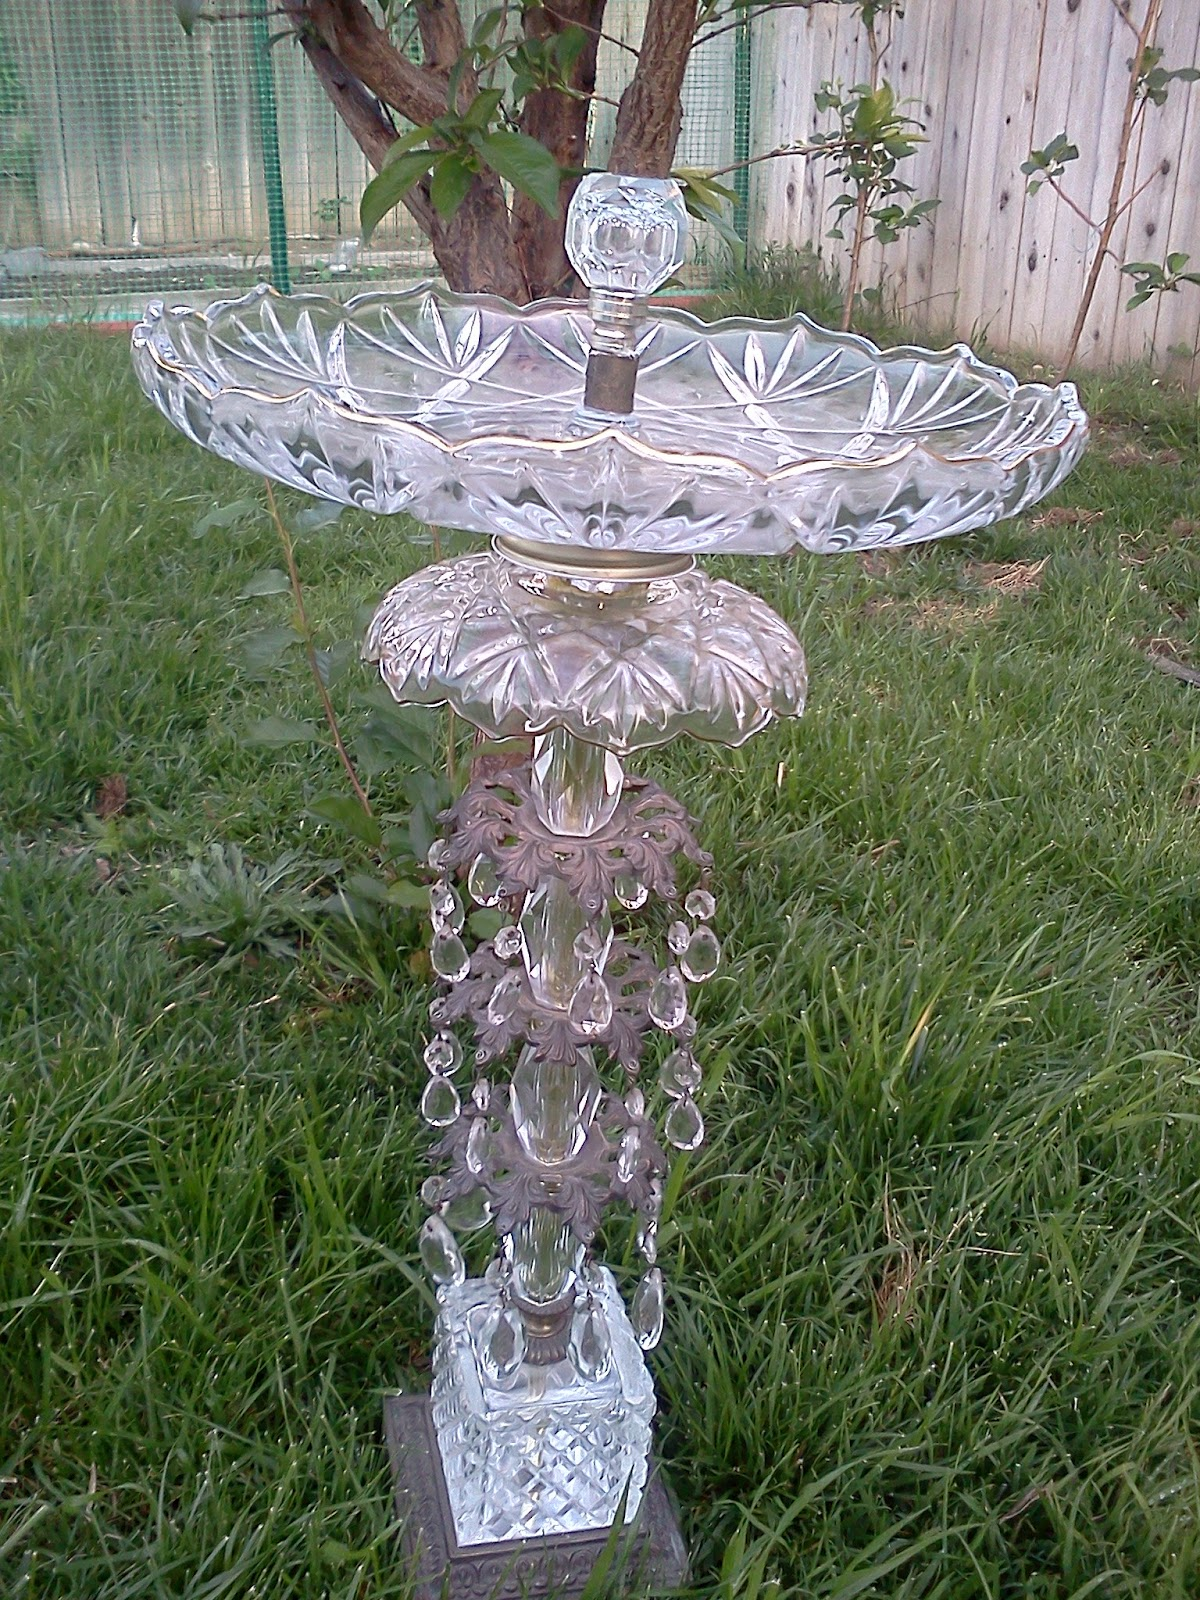 Oc Garden Jen Old Lamp Tiered Server New Bird Bath